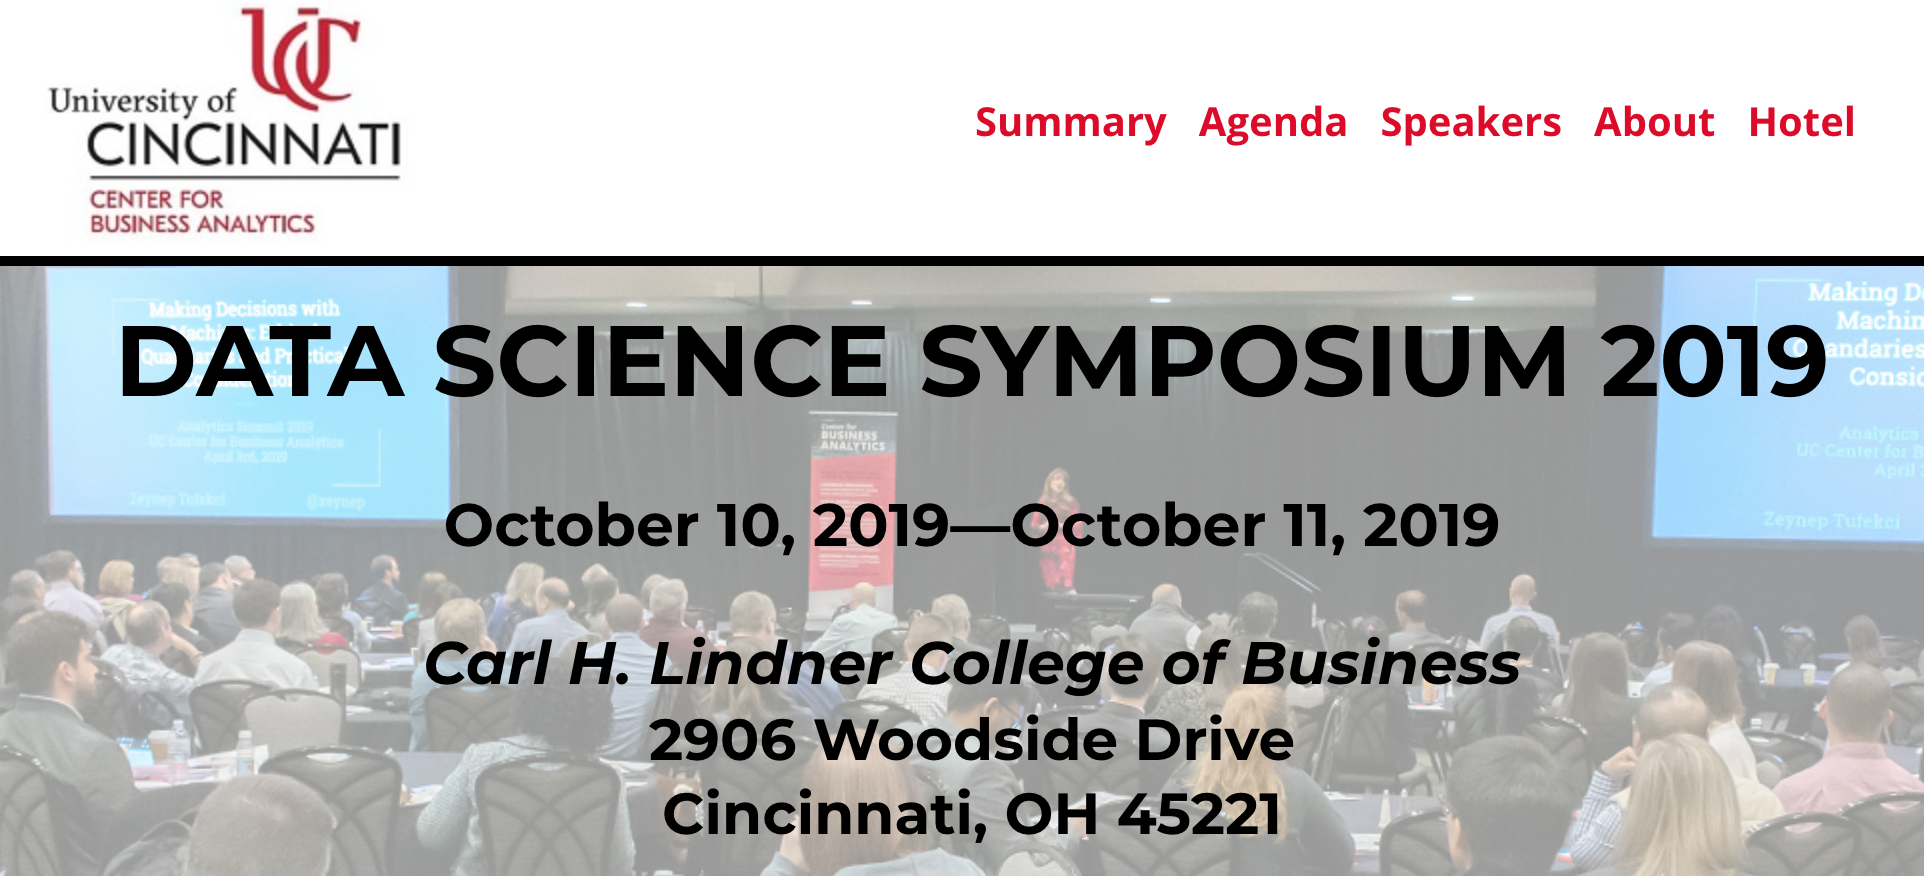 Image of the Data Science Symposium banner